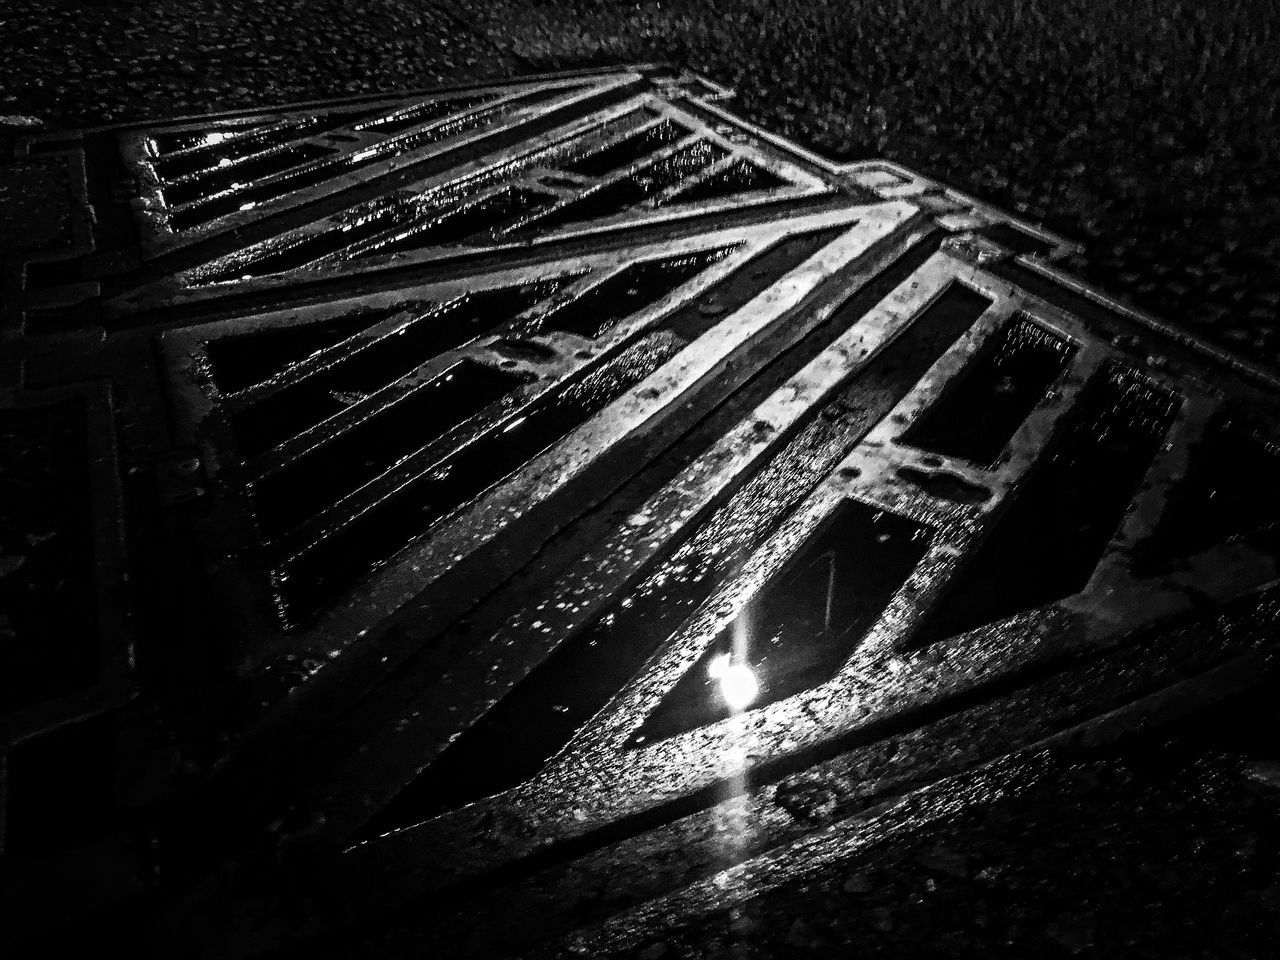 Creative Photography Streetphotography Drain Cover Dark Metallic Artistic Showcase July The Week Of Eyeem Urban Exploration Fine Art Black And White Tarmac Weathered